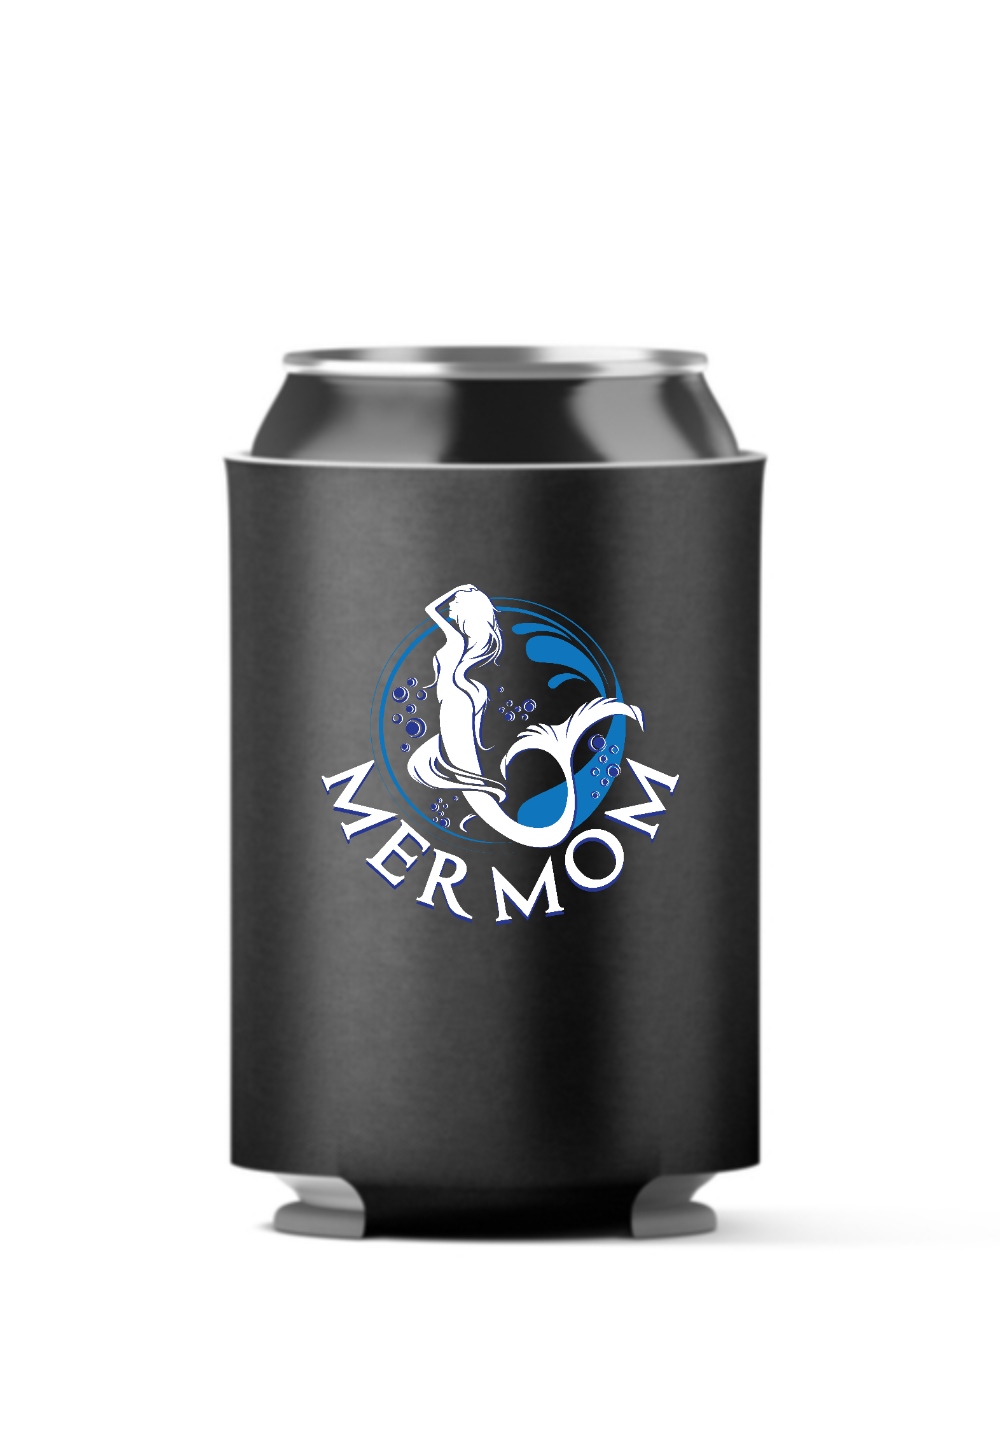 Mermom Mermaid 4-Pack Can Coolers